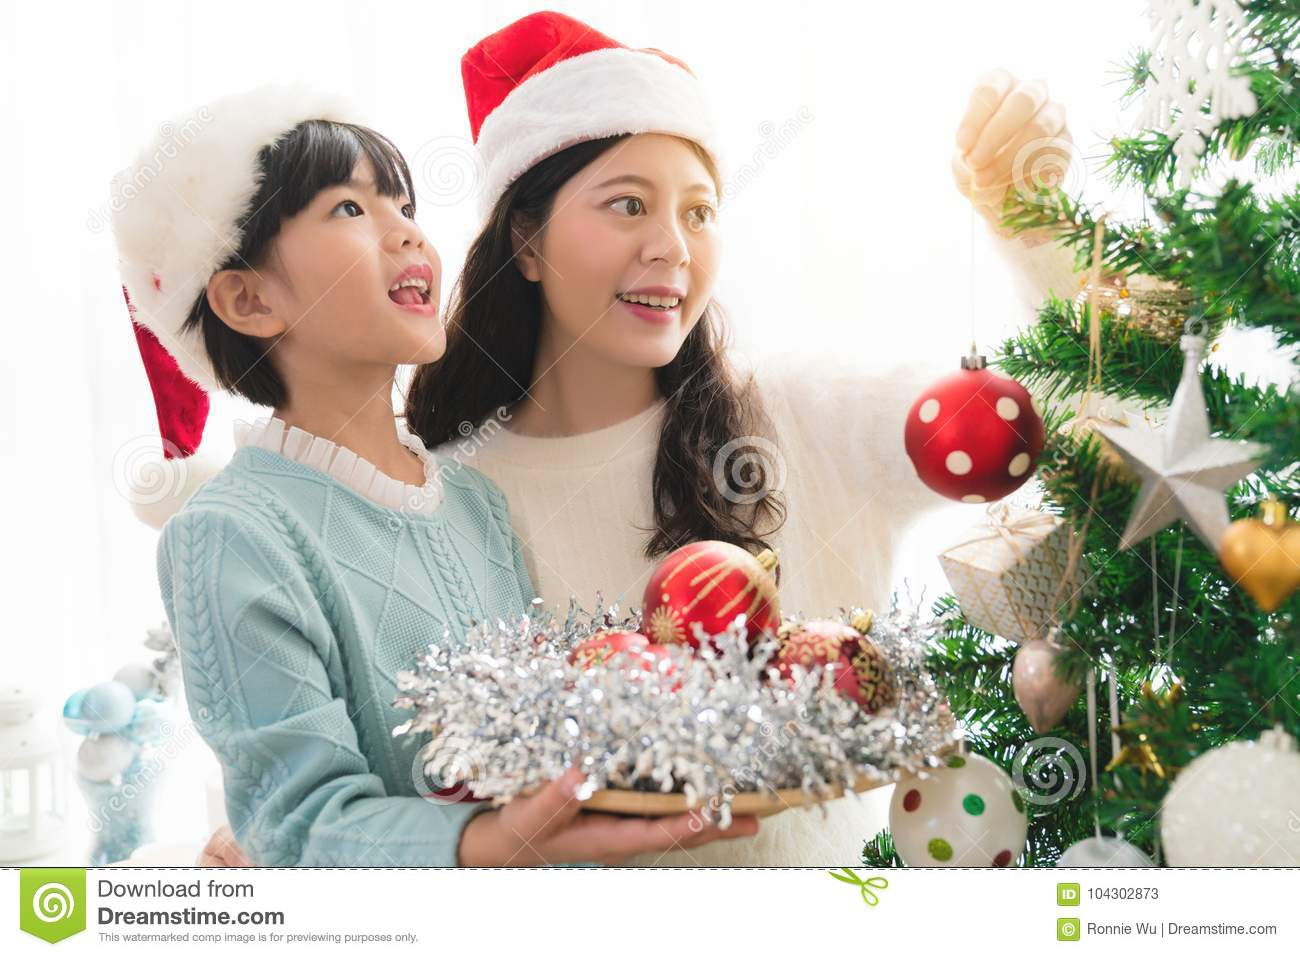 Girl with mum are decorating a Christmas tree